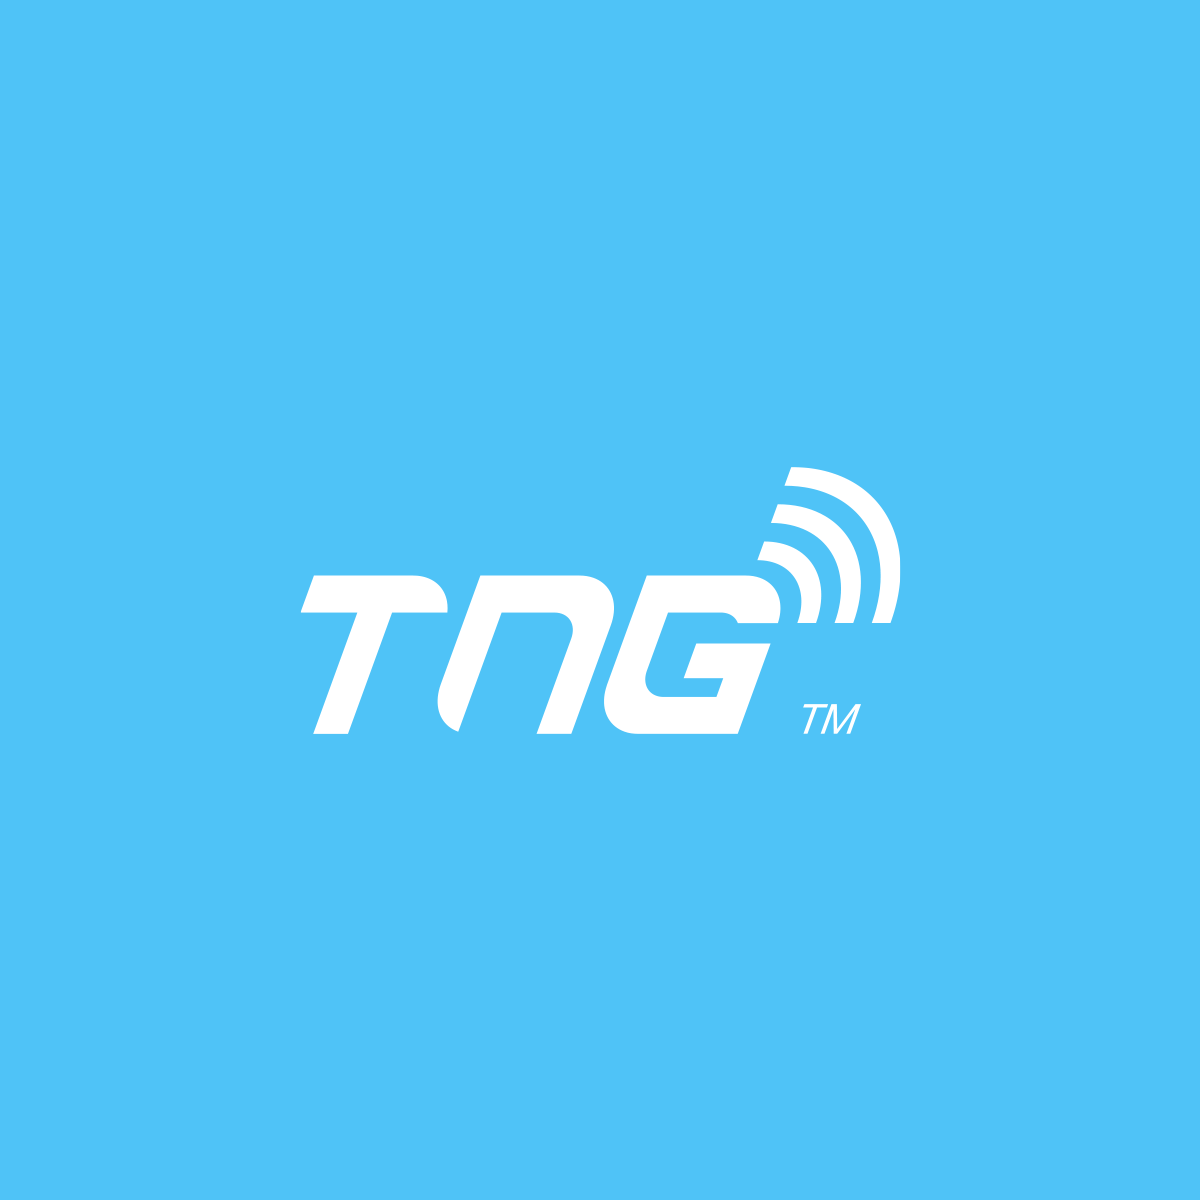 Global Transfer — TNG Wallet